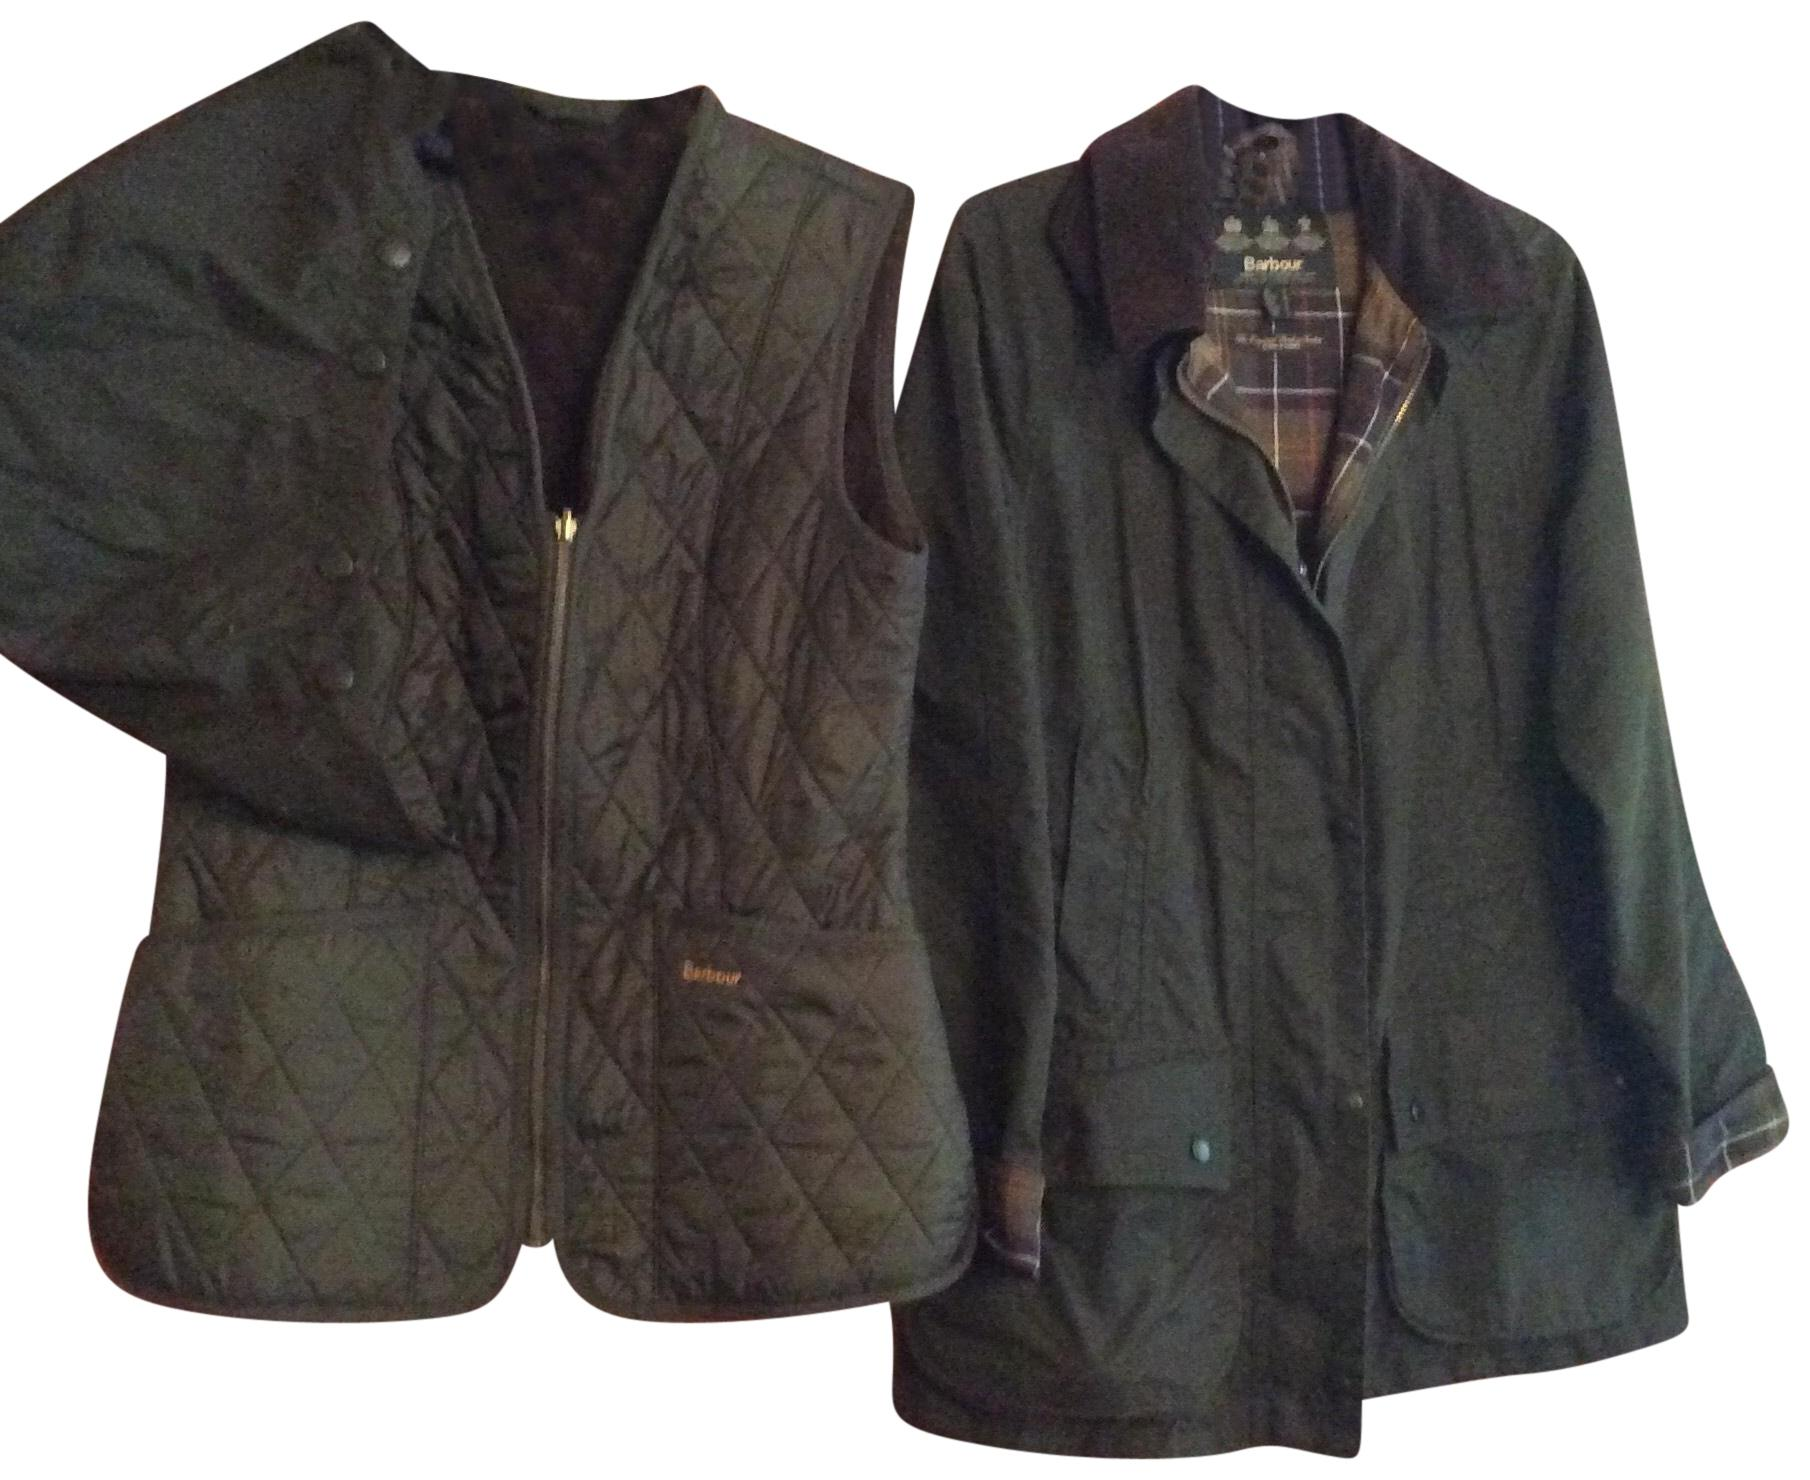 Barbour Raincoat Beadnell Hood Liner Classic Olive and In Vest Zip zrqz4vw 2949869037e4